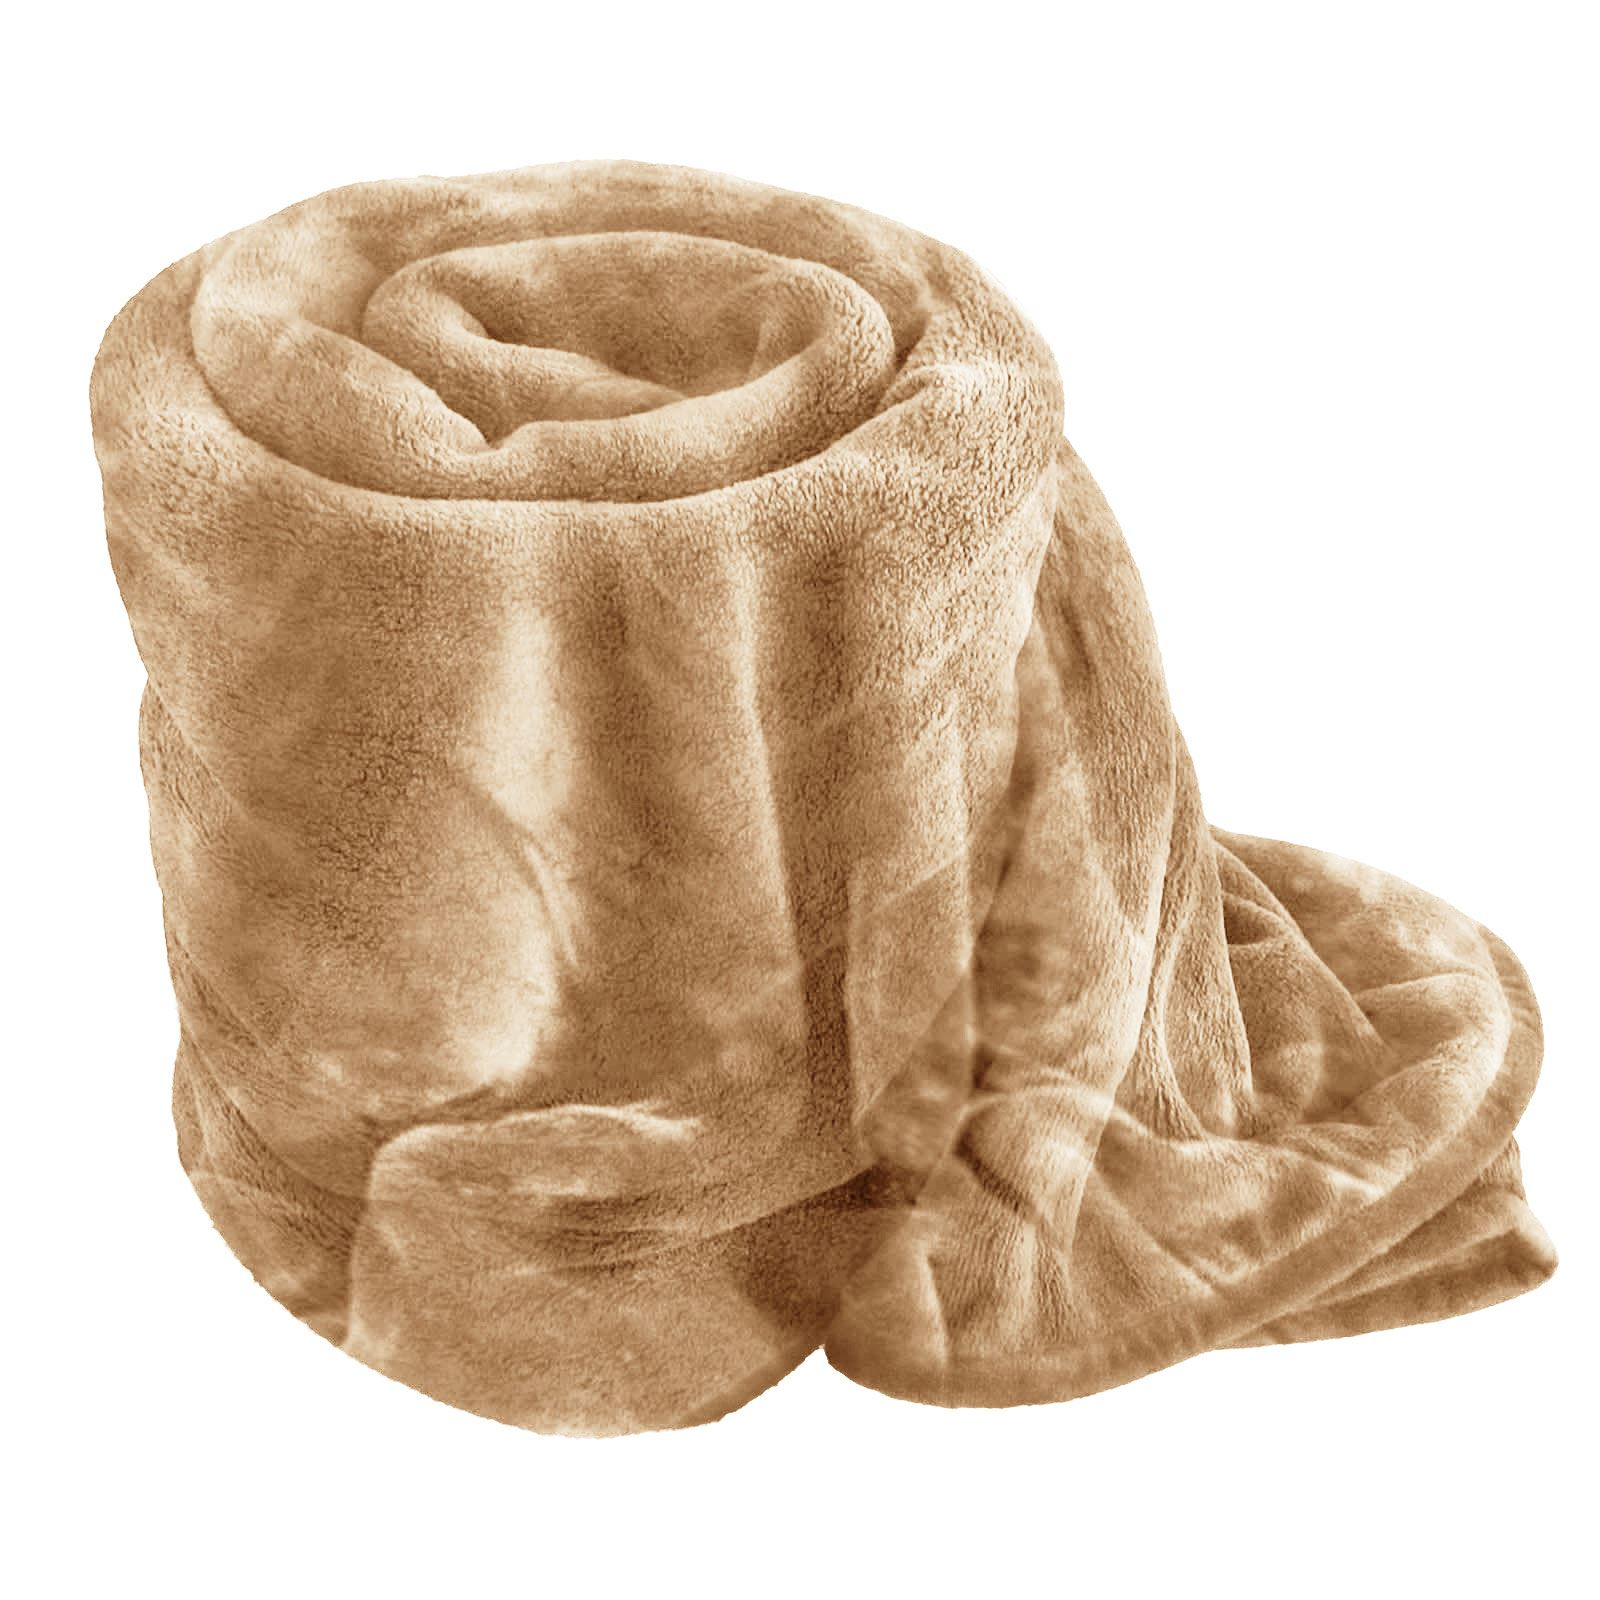 LUXURY FAUX FUR BLANKET BED THROW SOFA SOFT WARM FLEECE  : 2975fa66 e214 40c6 8549 cd2efda1d7e0 from www.ebay.com size 1600 x 1600 jpeg 210kB